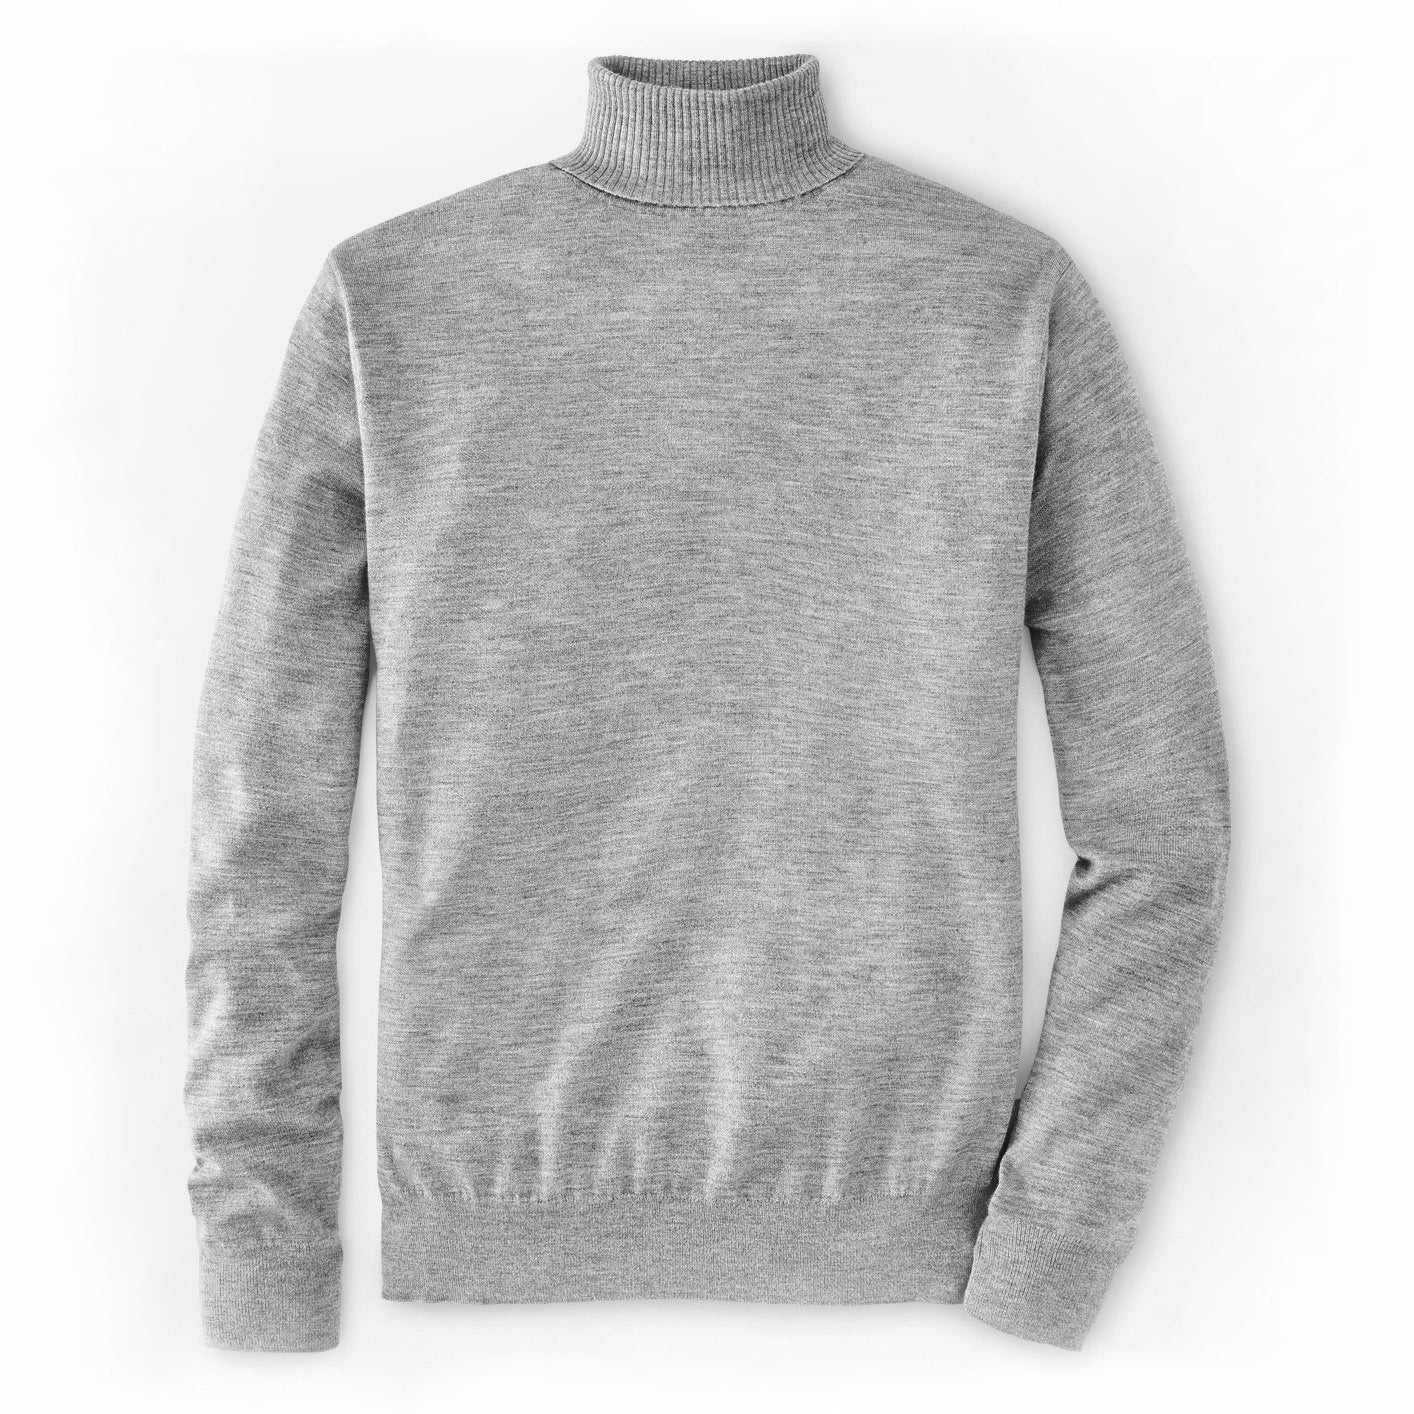 Peter Millar Turtleneck Sweater